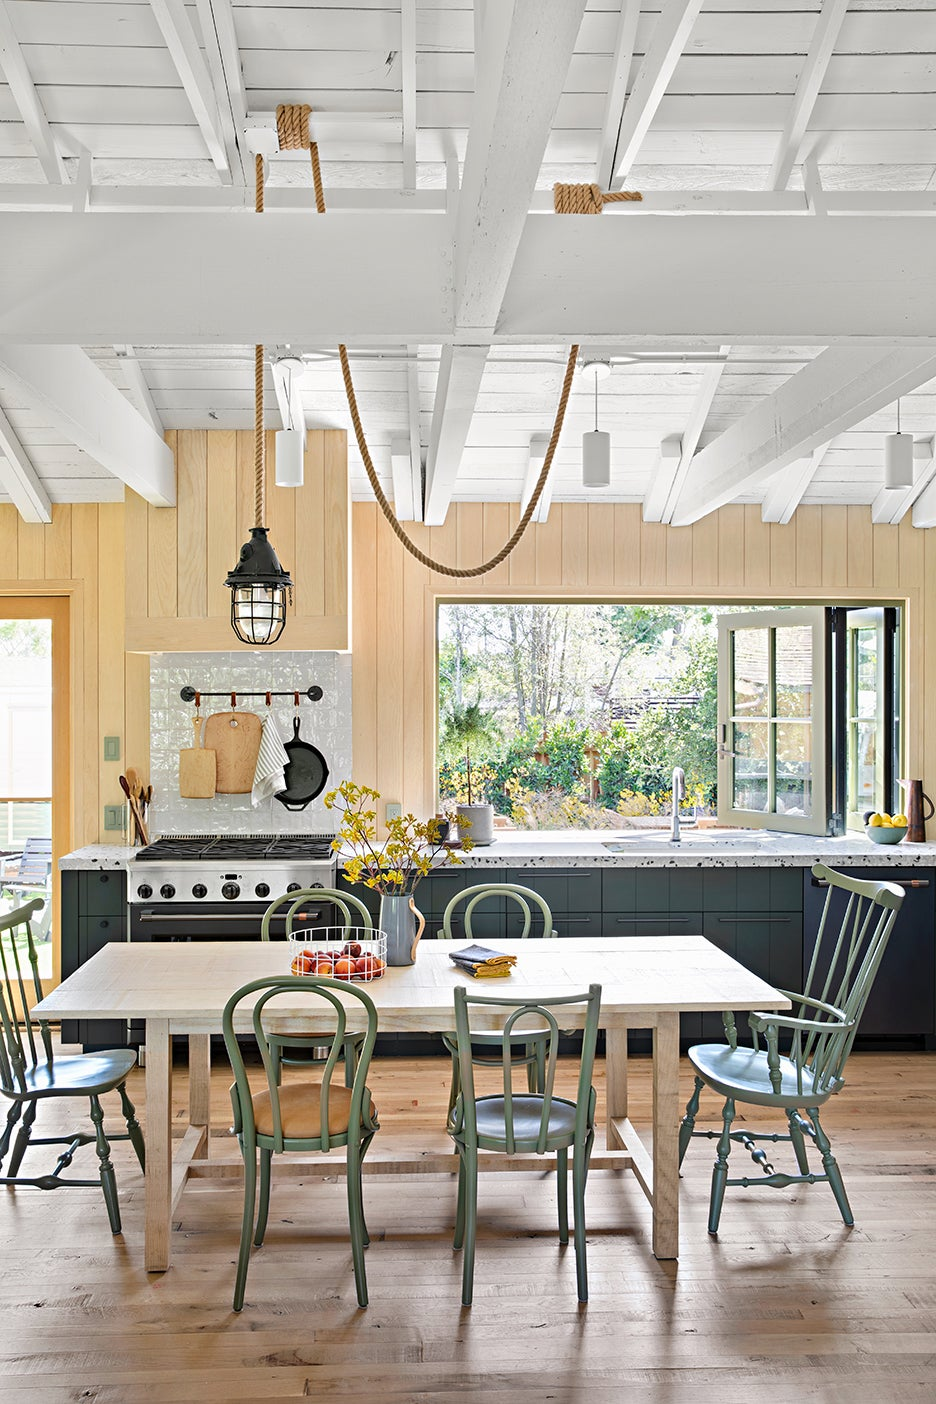 green and wood kitchen with high ceilings